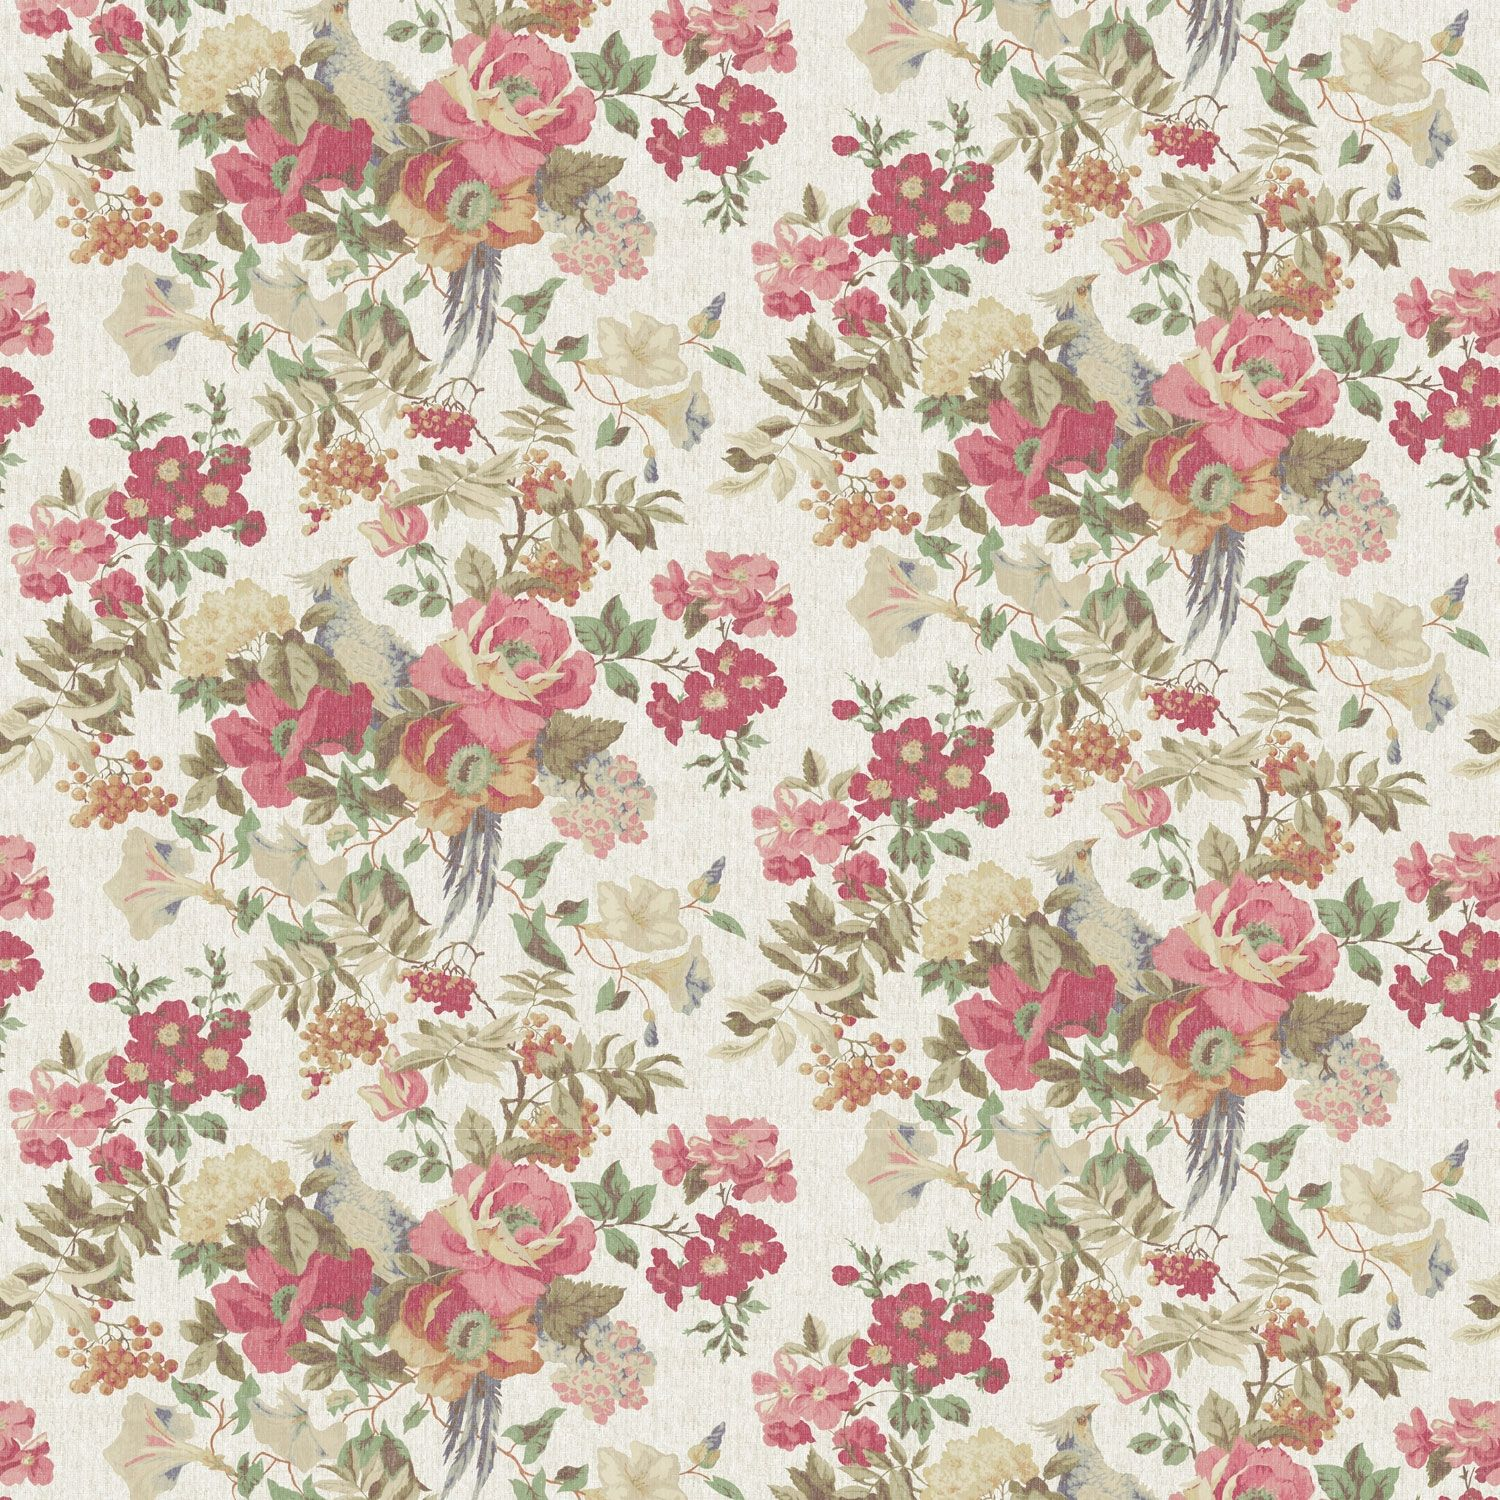 Vintage Floral Wallpaper Hd For Pc Con Imagenes Fondo De